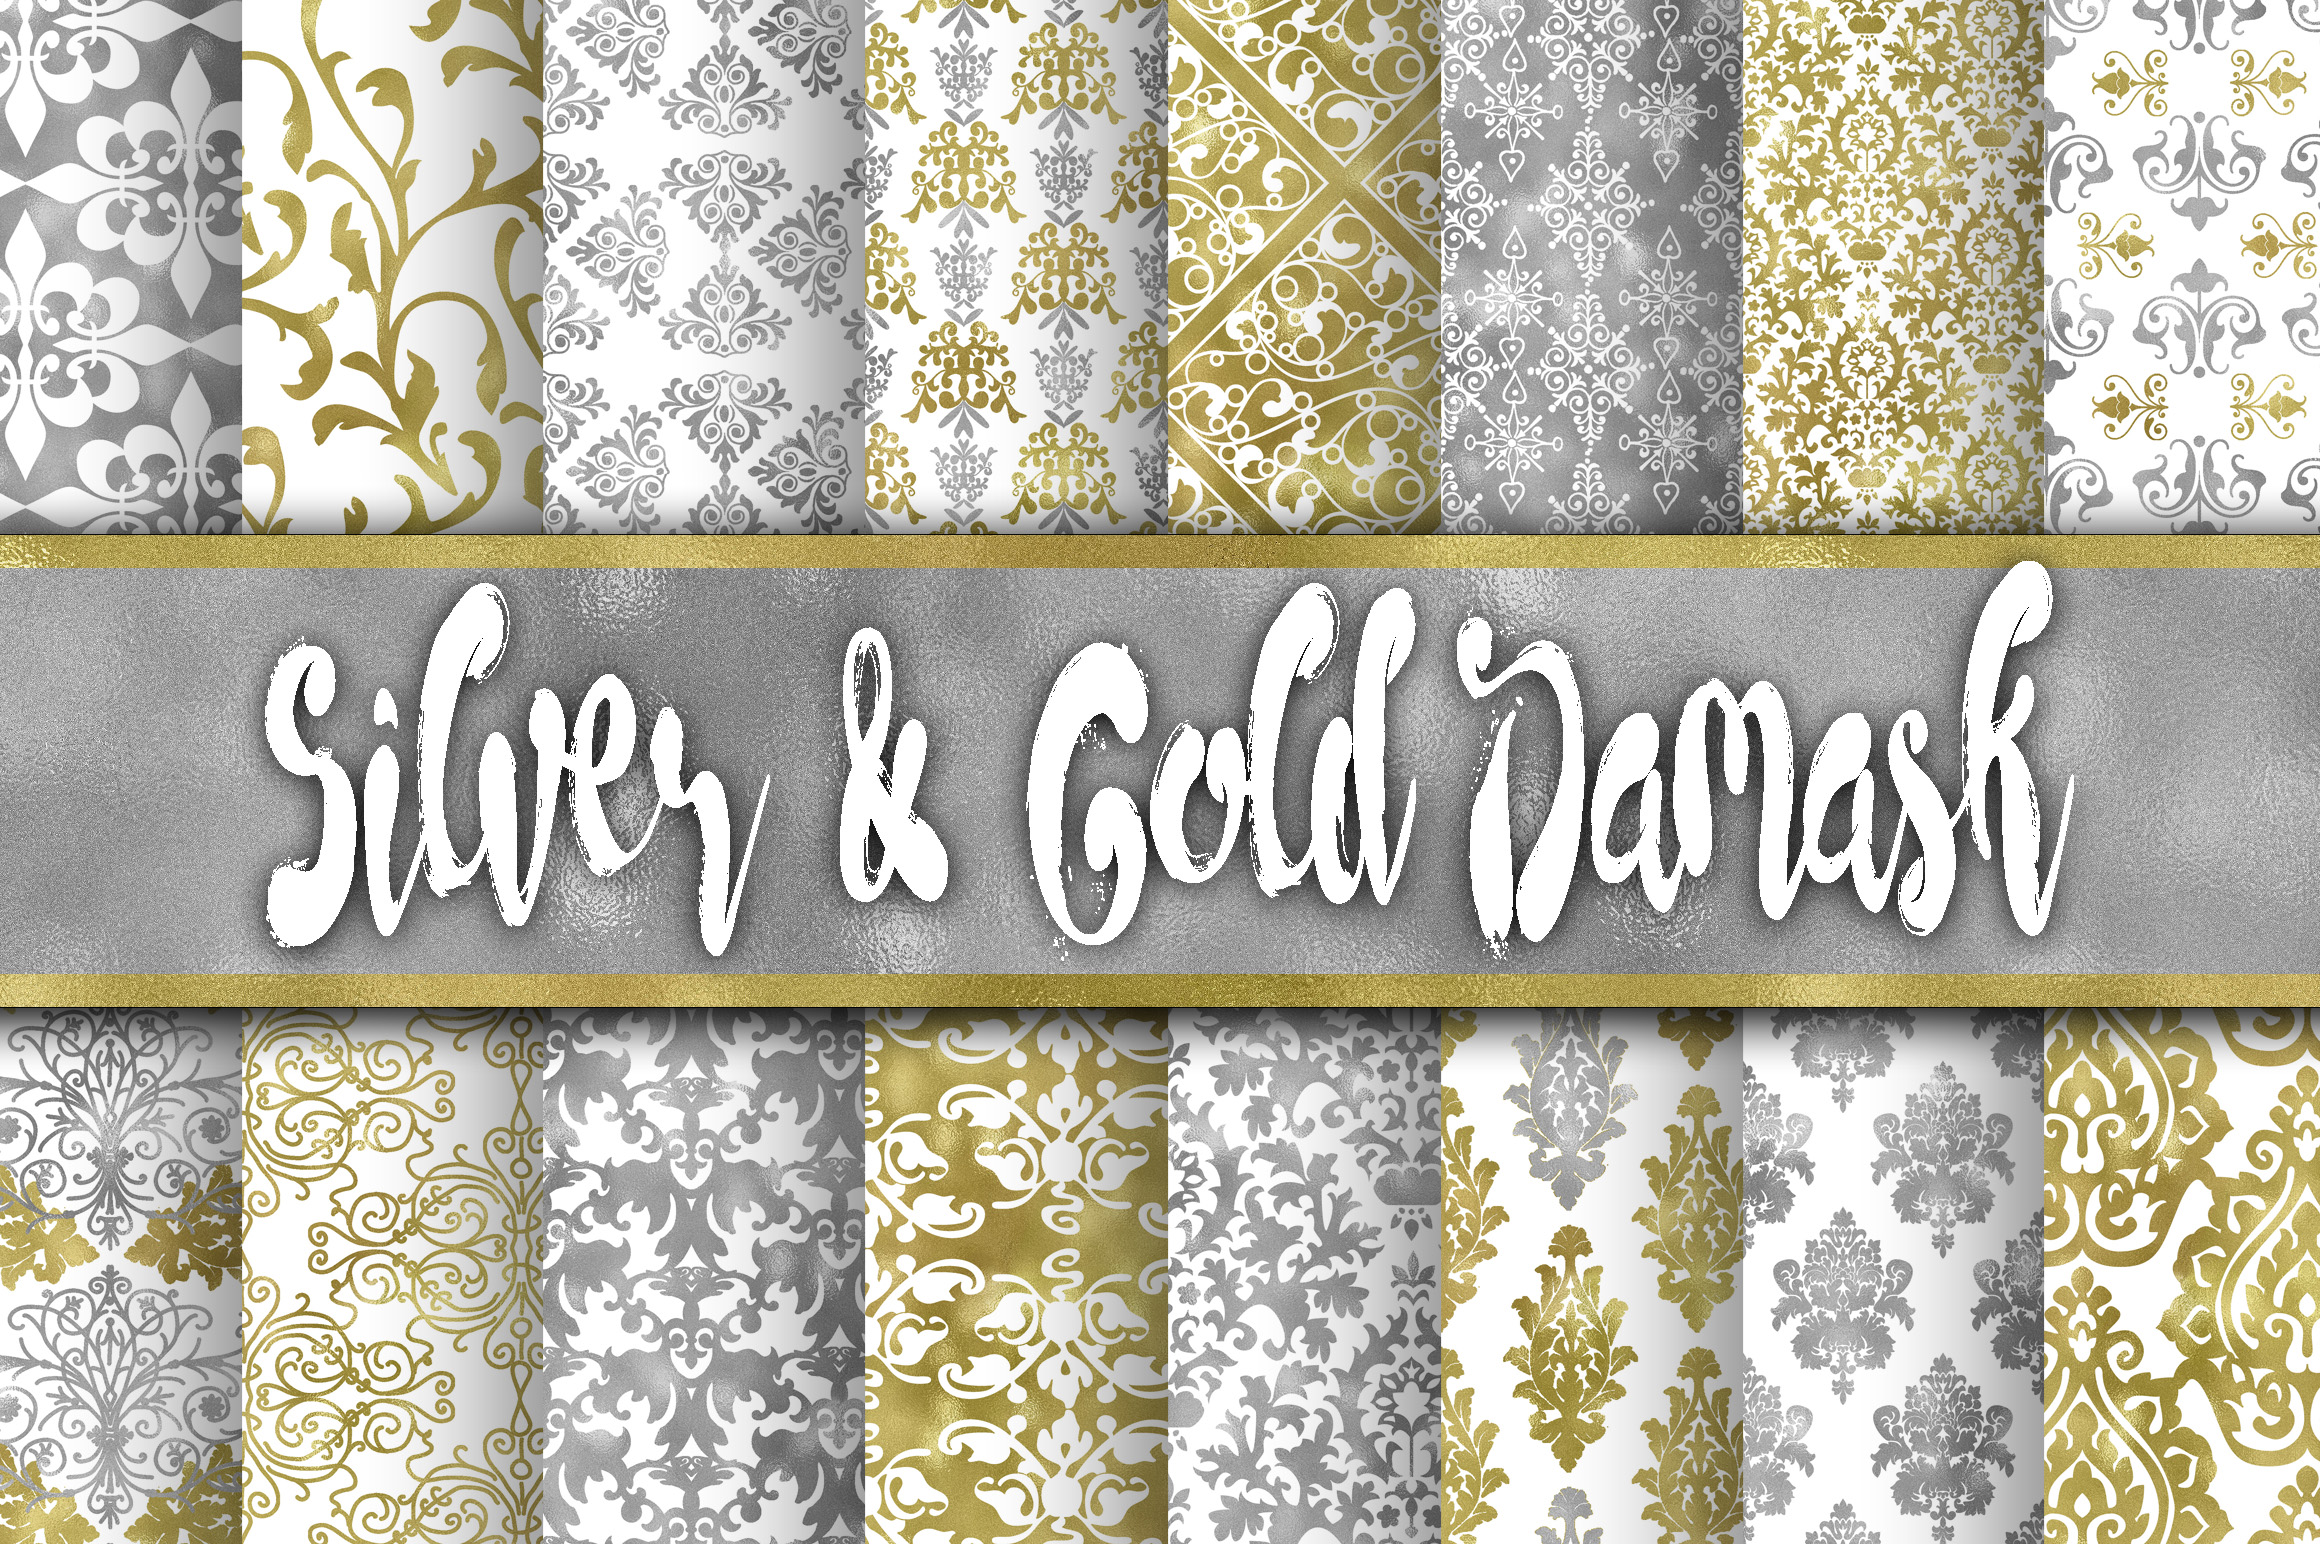 Silver and Gold Damask Digital Paper Graphic Backgrounds By oldmarketdesigns